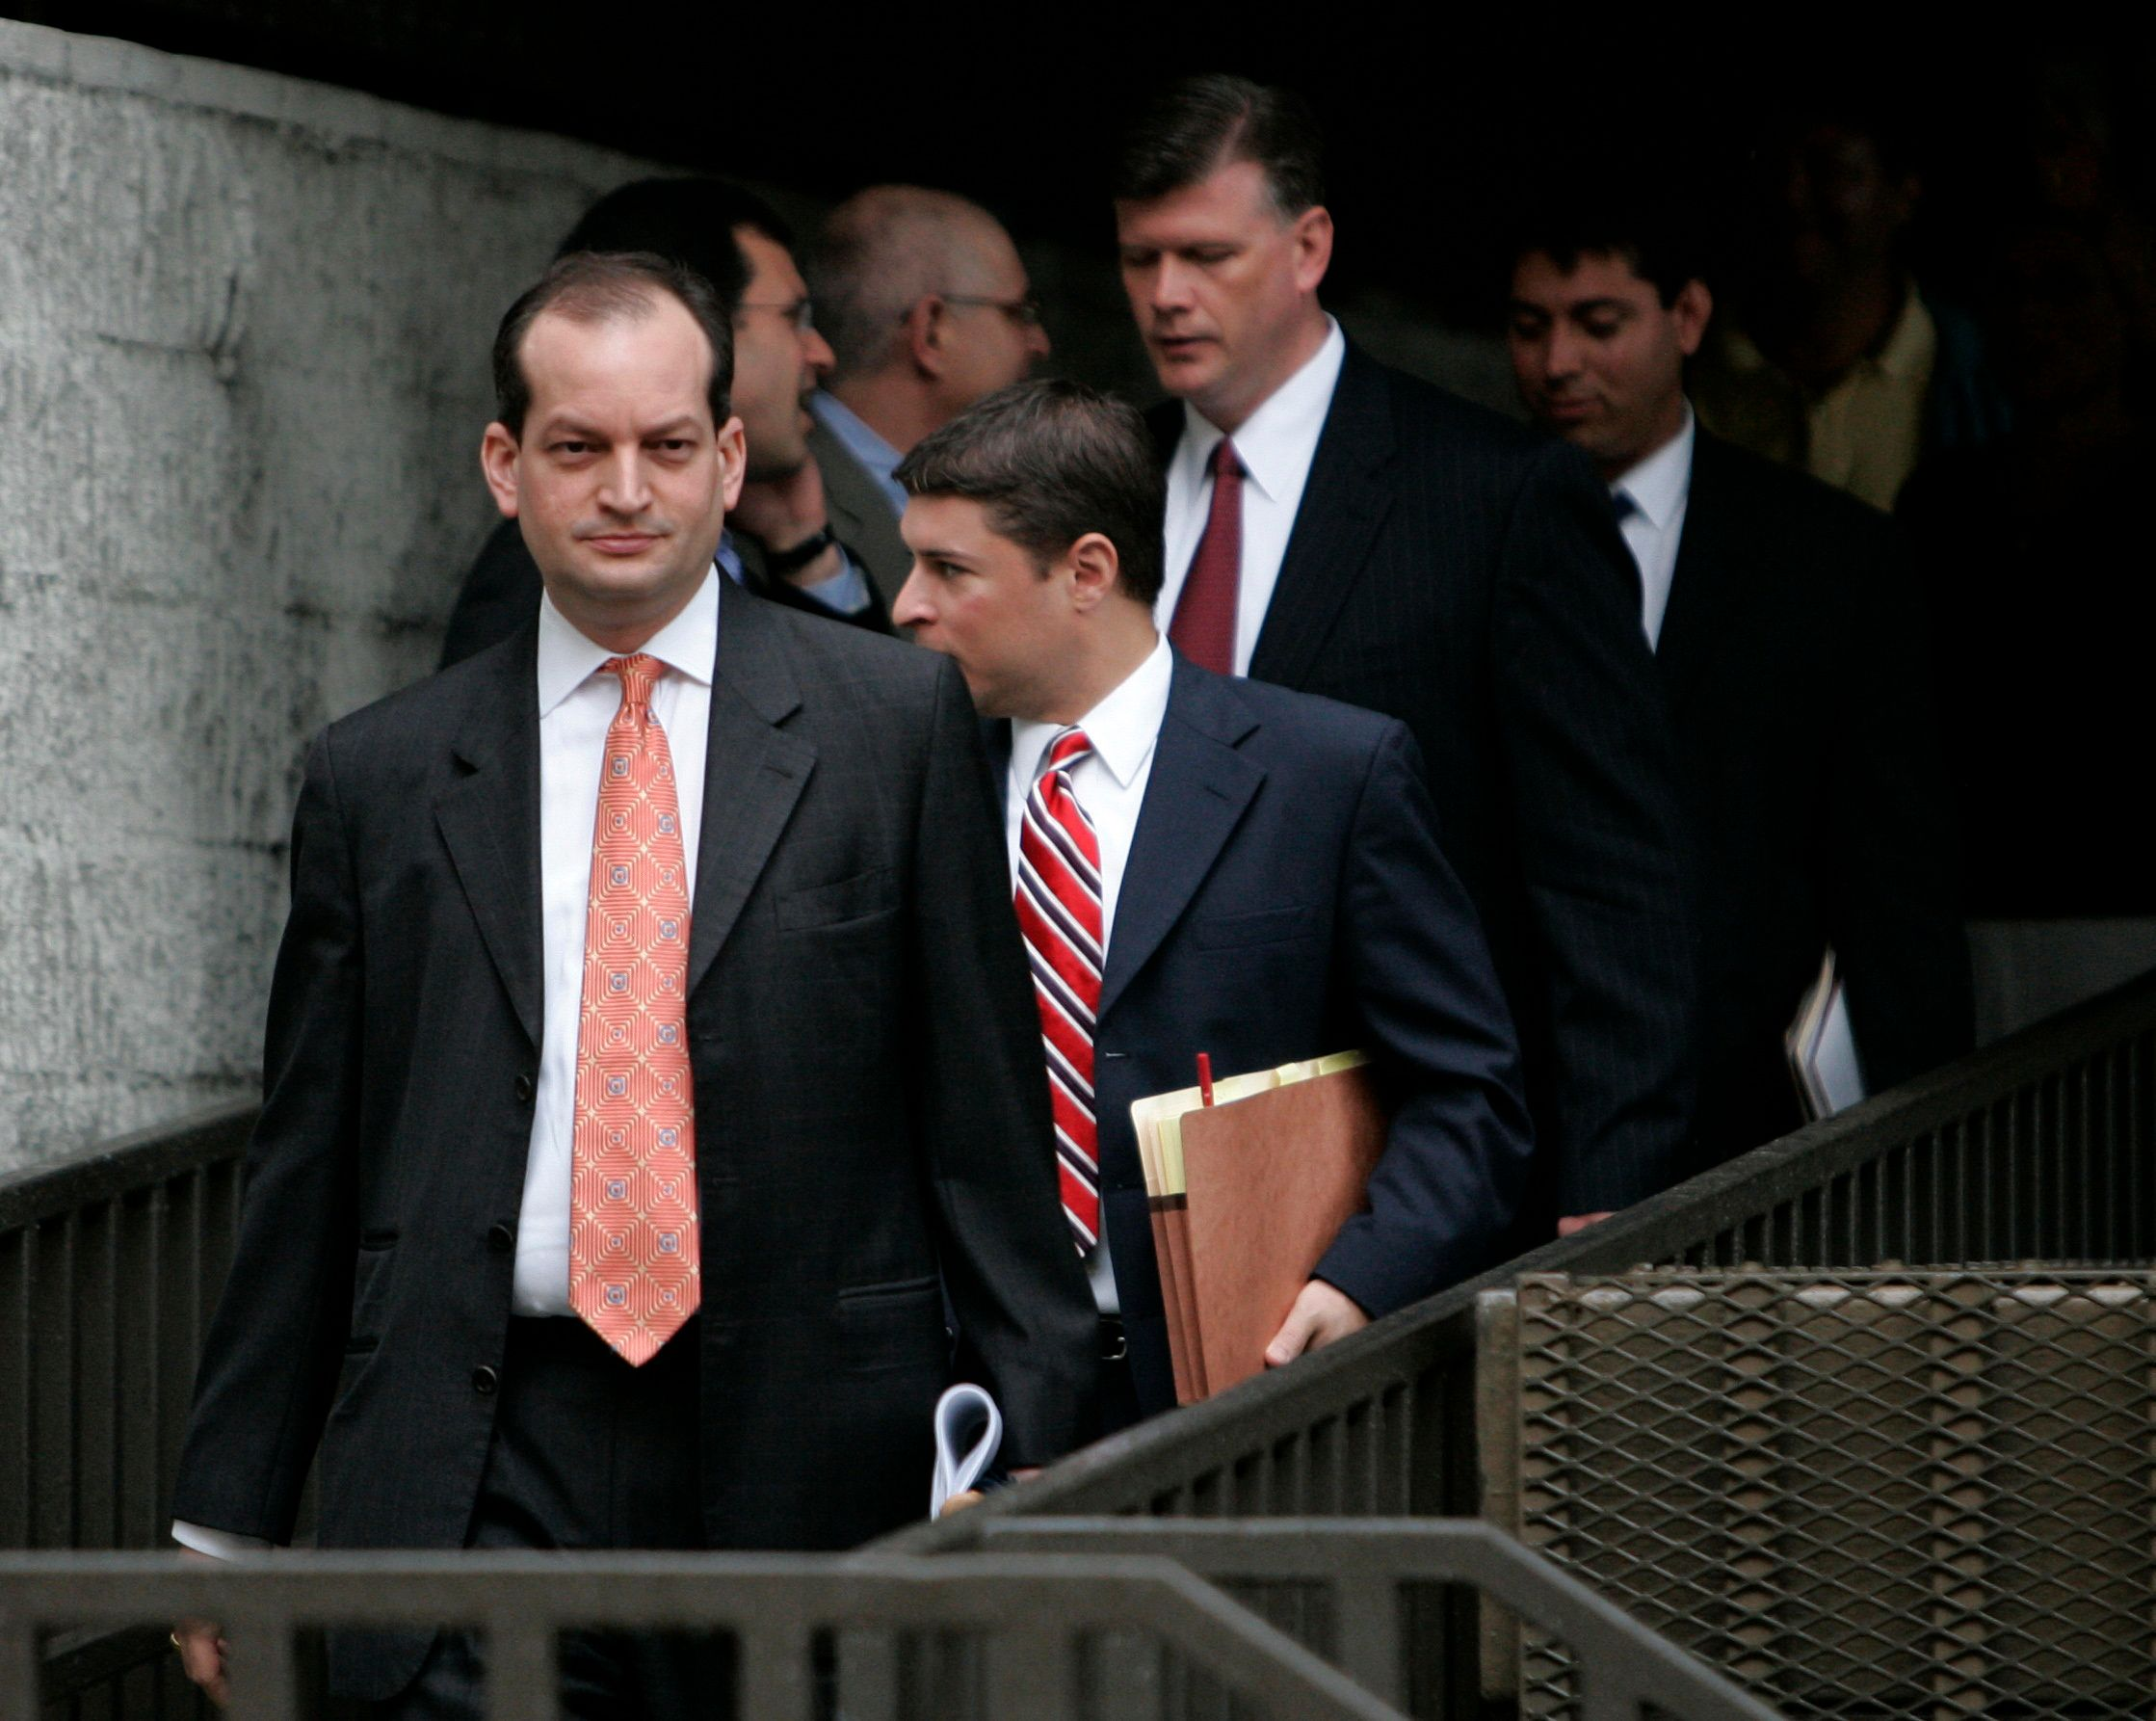 R. Alexander Acosta, United States Attorney (L) exits U.S. District Court with other attorneys at U.S. District Court in Fort Lauderdale, Florida June 19, 2008, where Bradley Birkenfeld, a former UBS AG banker, pleaded guilty to charges of conspiring to help an American billionaire to evade taxes.     REUTERS/Joe Skipper  (UNITED STATES)